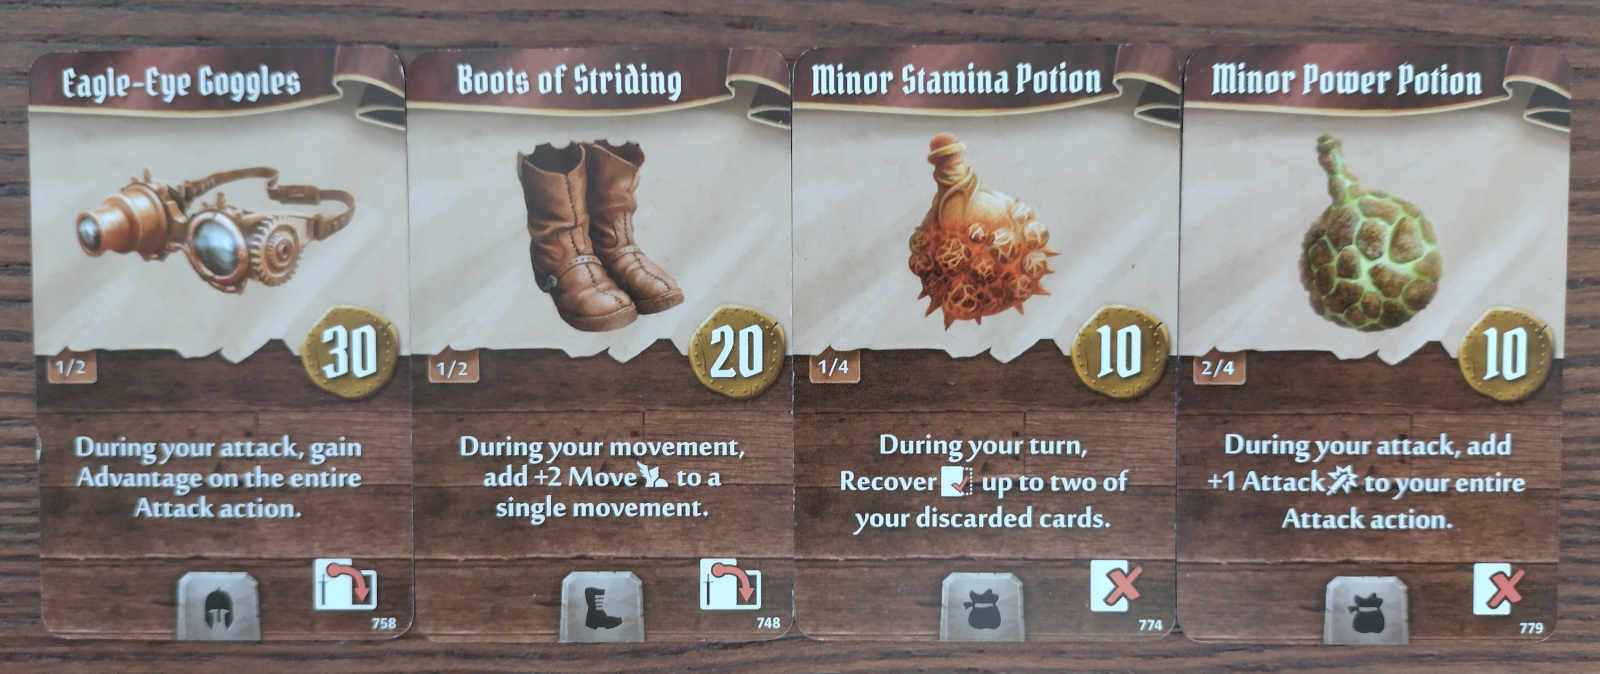 Plagueherald starting item cards - Eagle-Eye Goggles, Boots of Striding, Minor Stamina Potion and Minor Power Potion